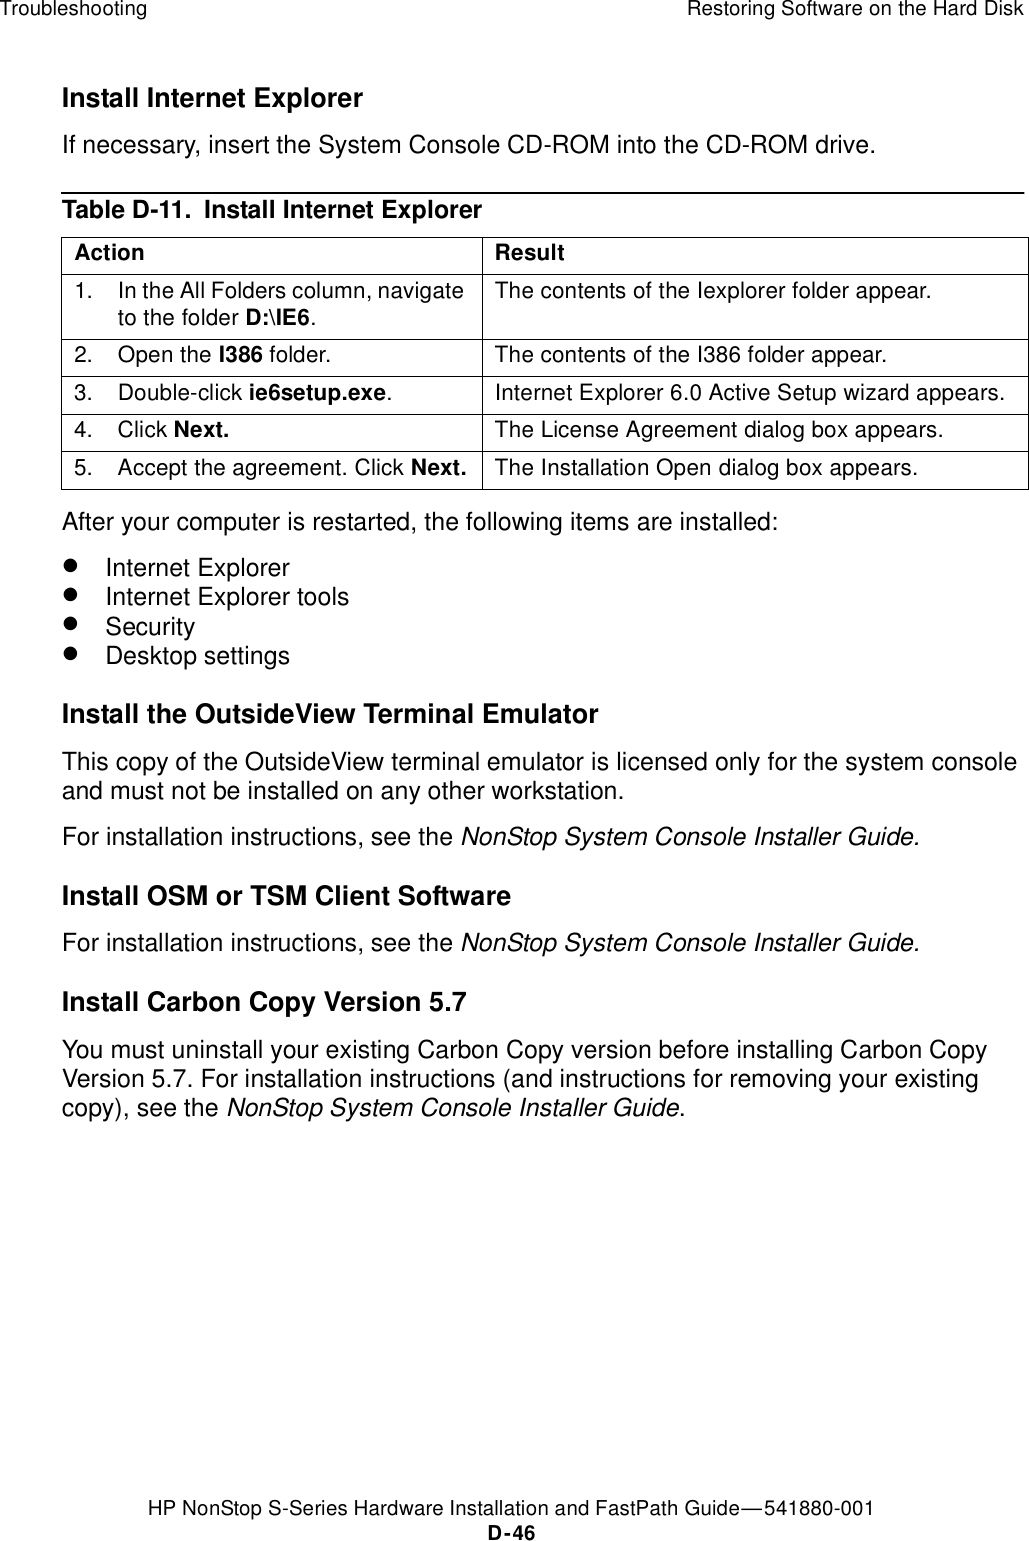 Hp Nonstop S Users Manual Series Hardware Installation And FastPath